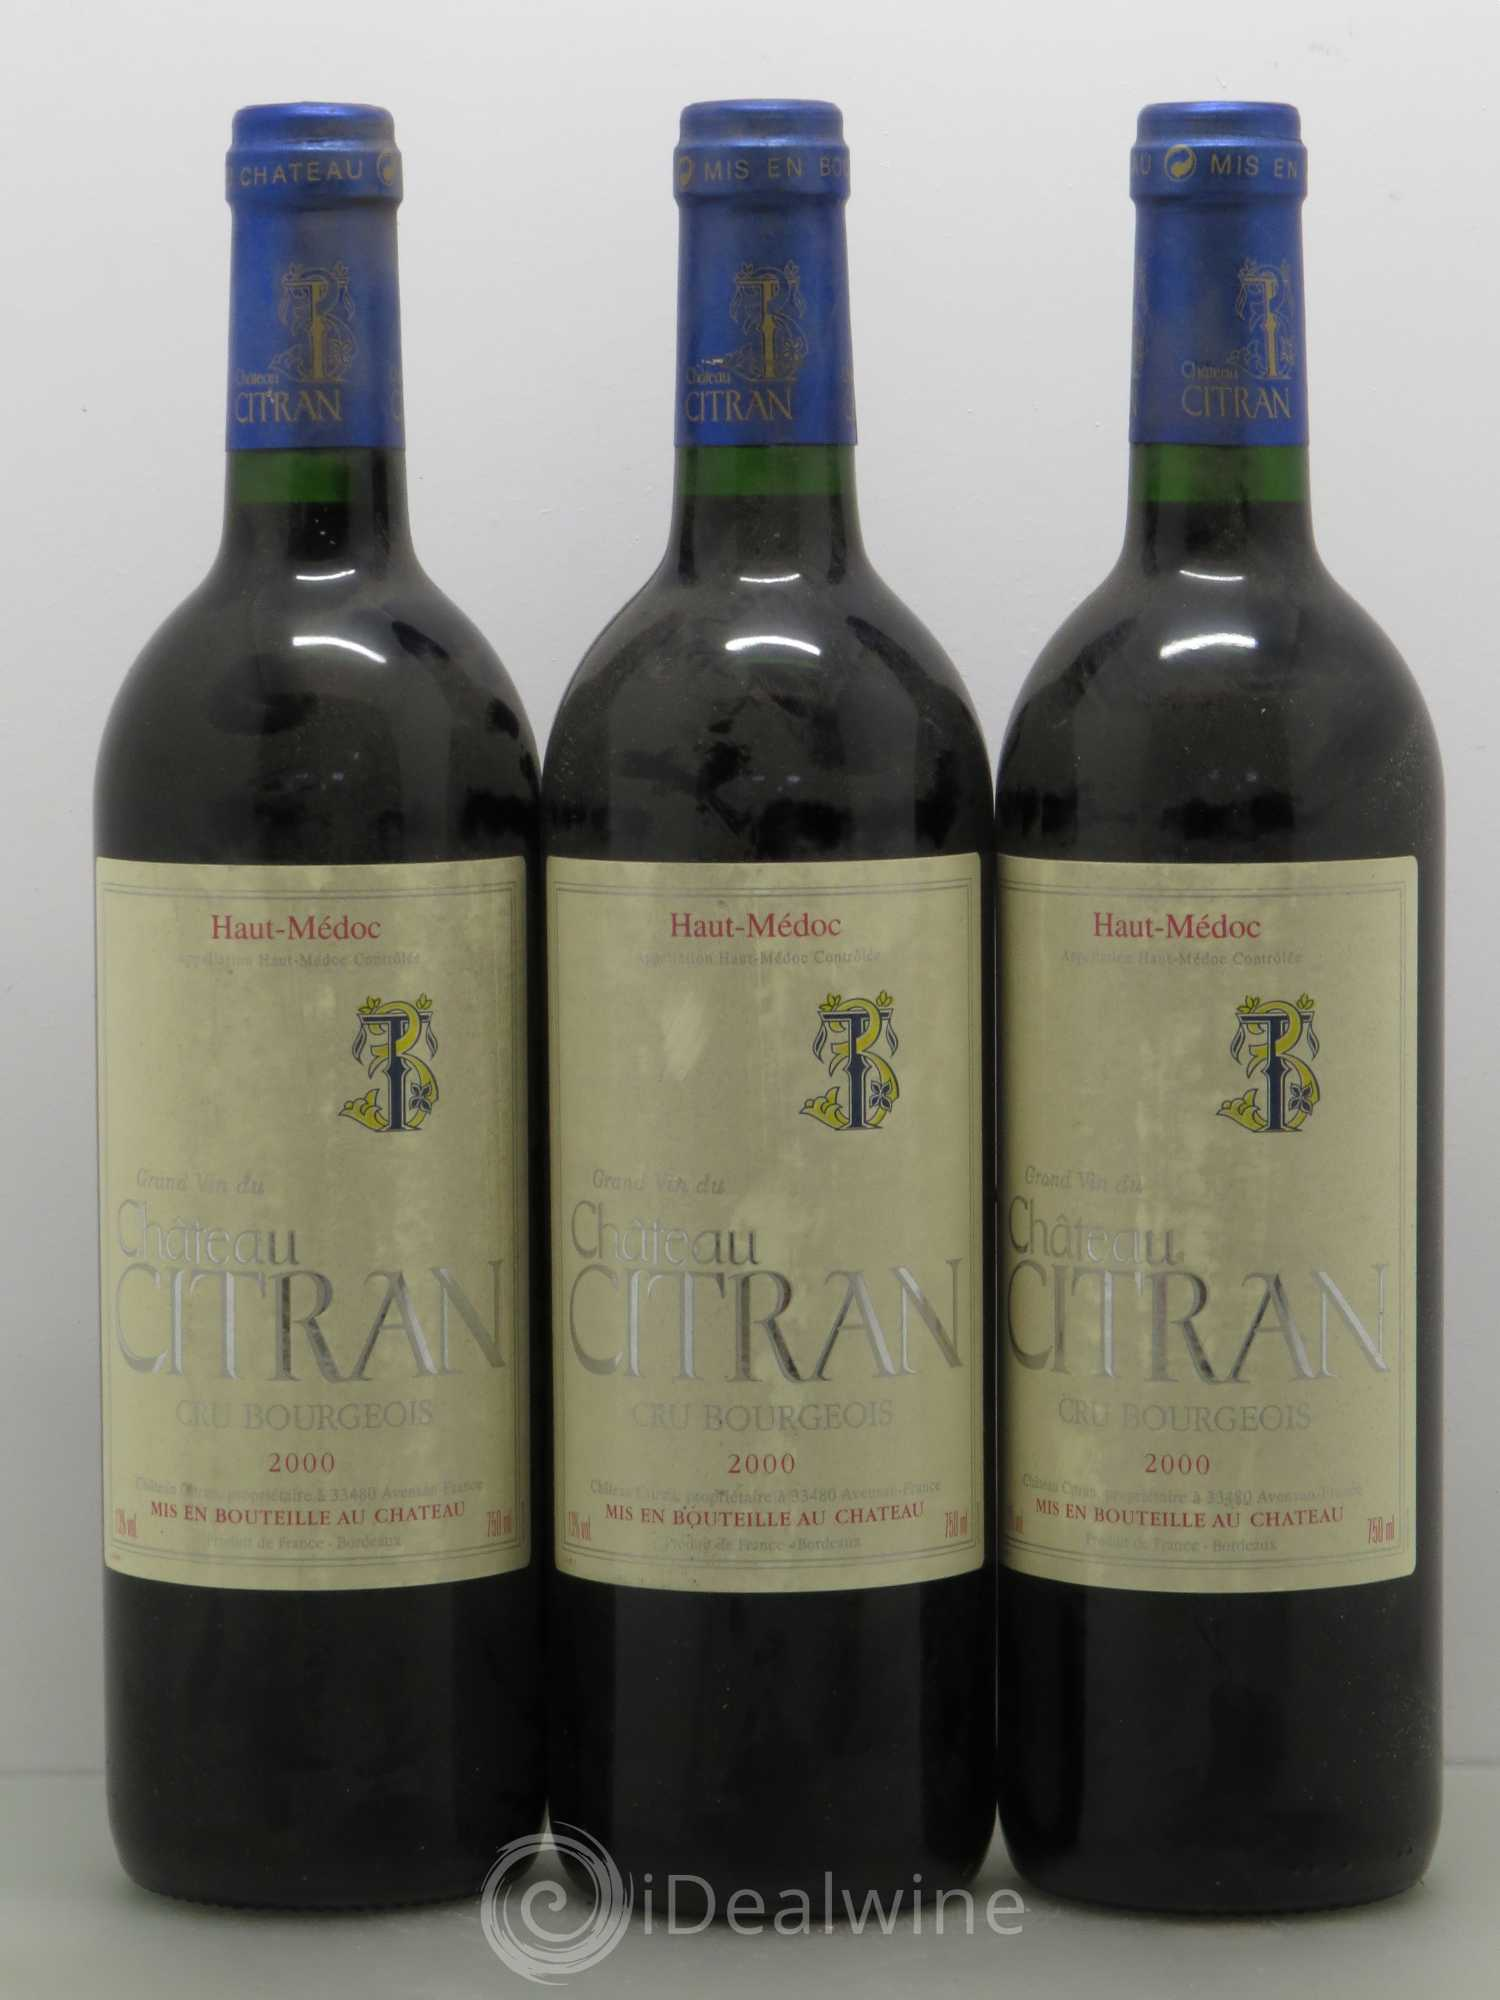 Buy ch teau citran cru bourgeois 2000 lot 11175 for Buy chateaubriand